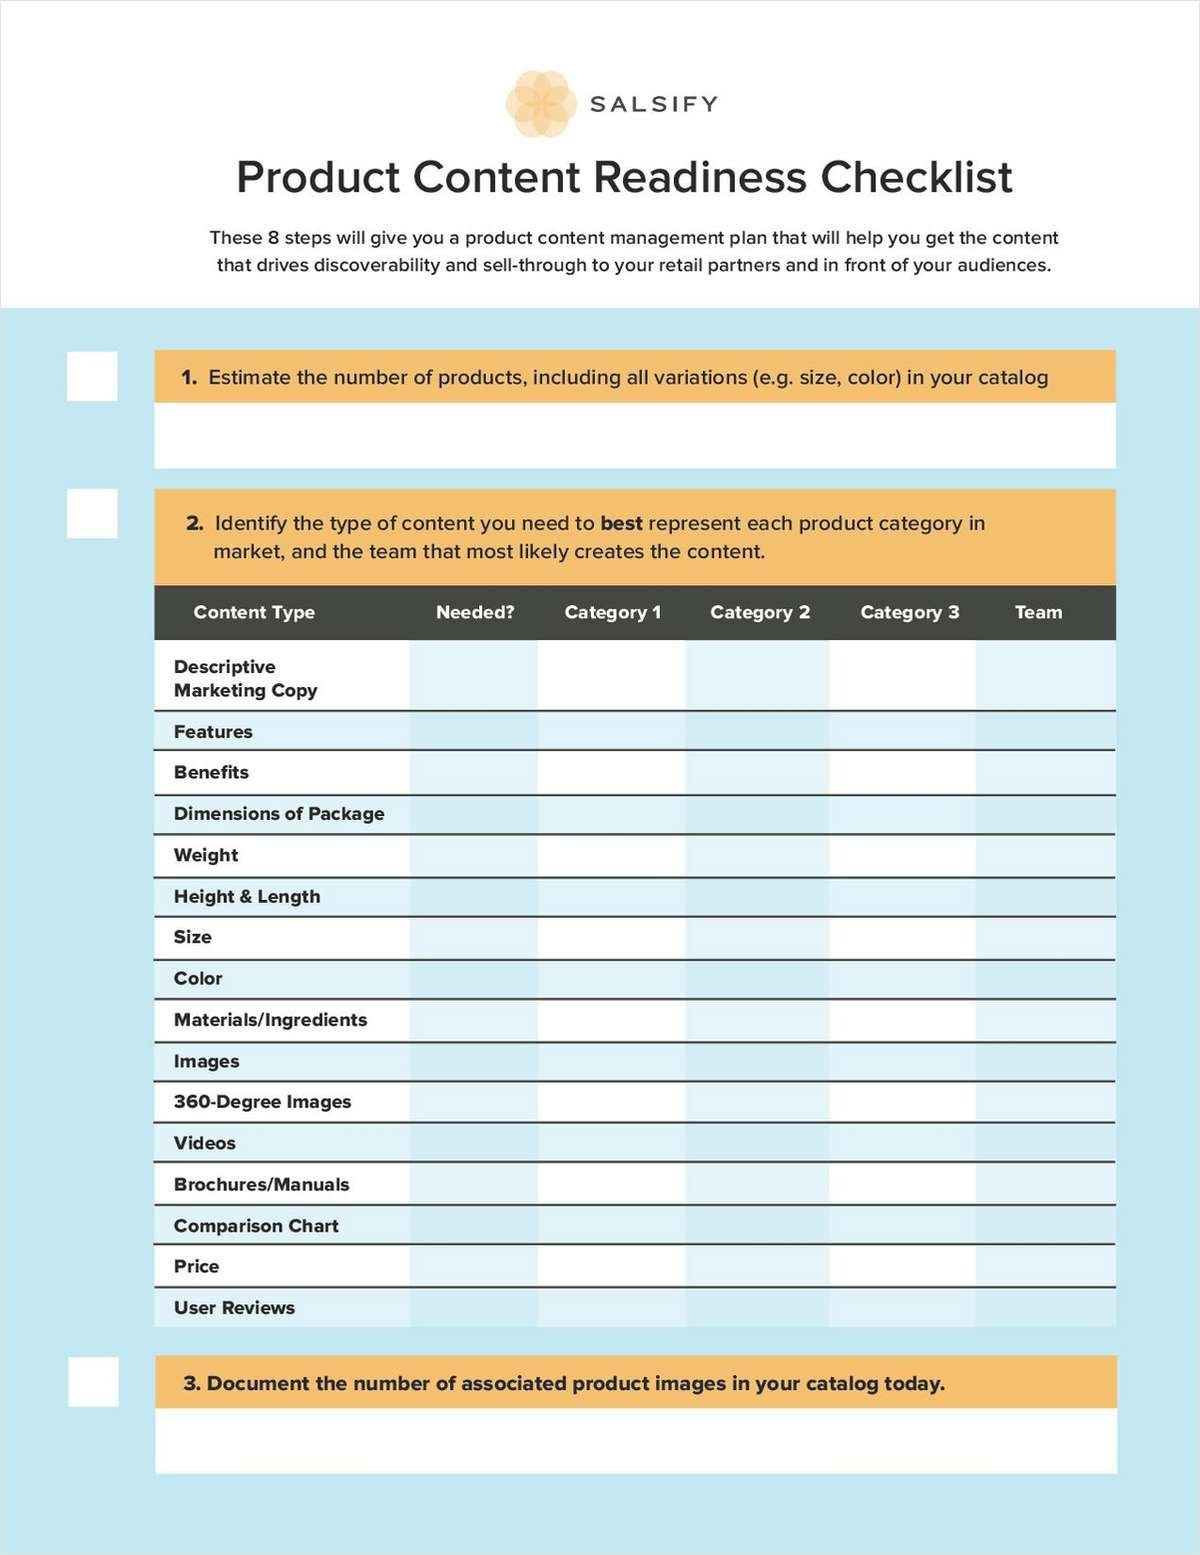 Get Ready to Sell More with the Product Content Readiness Checklist